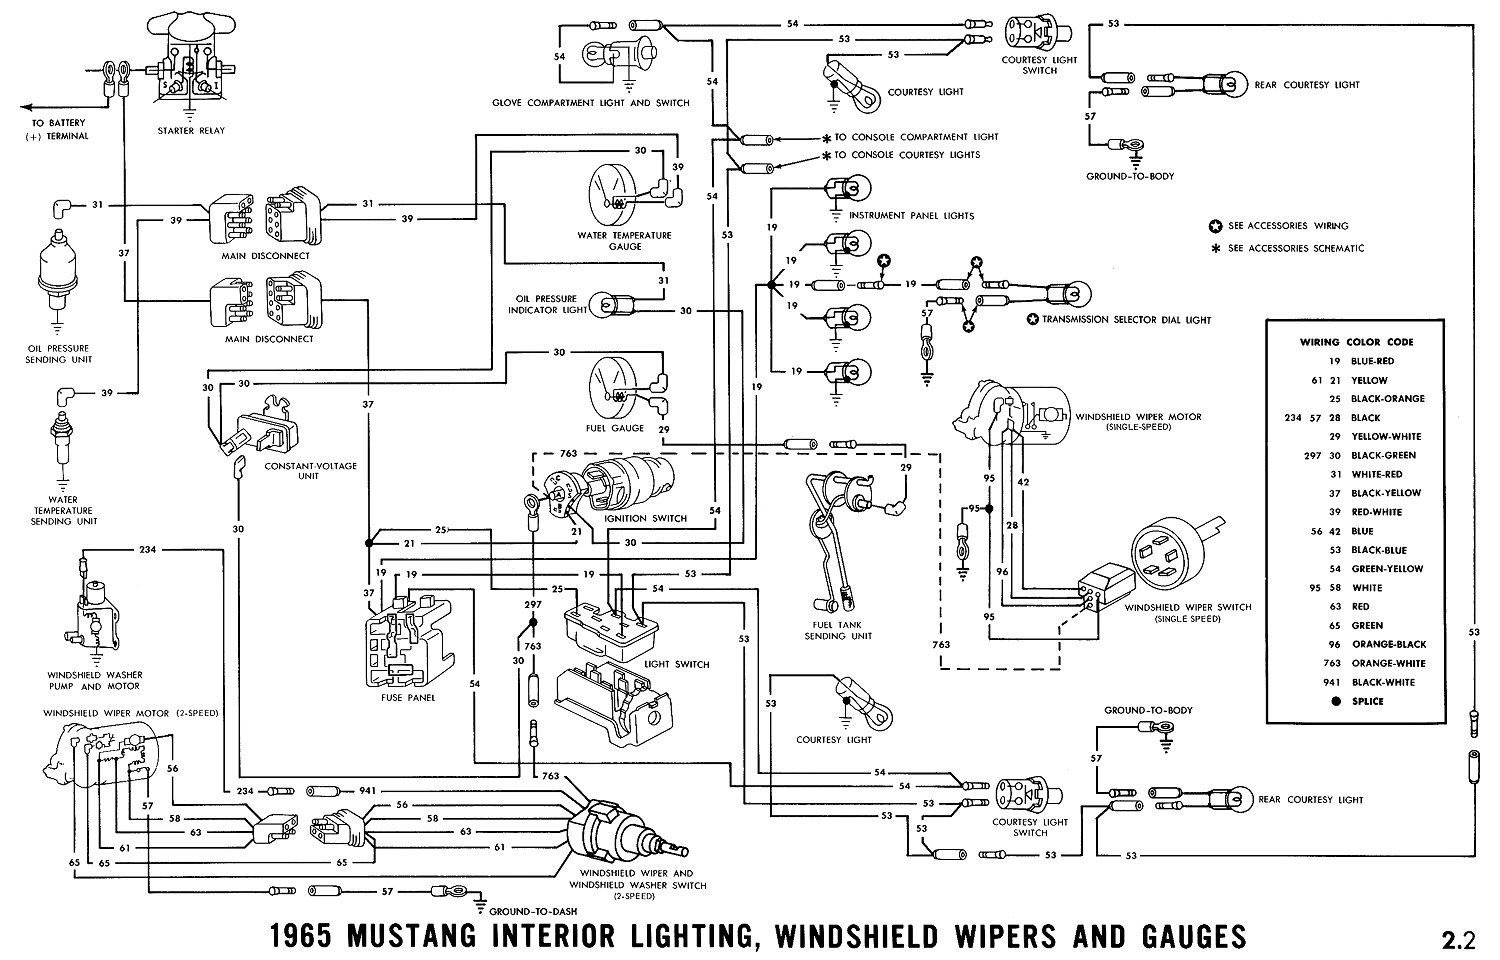 1965g 1965 mustang wiring diagrams average joe restoration au falcon wiring diagram manual at n-0.co